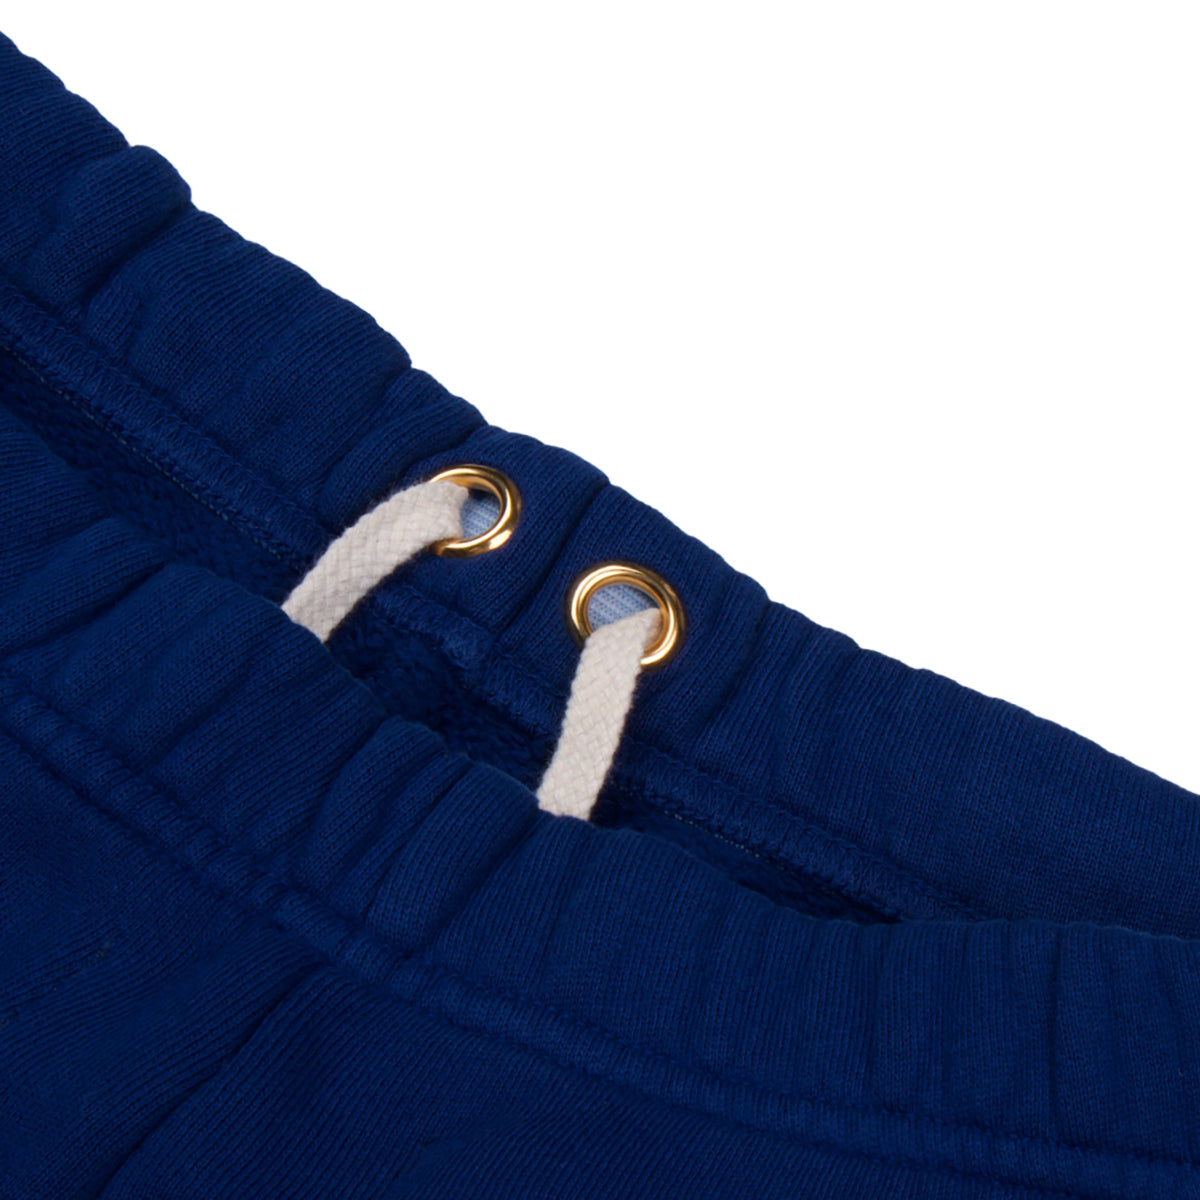 Classic Sweatpant Electric Blue image-3